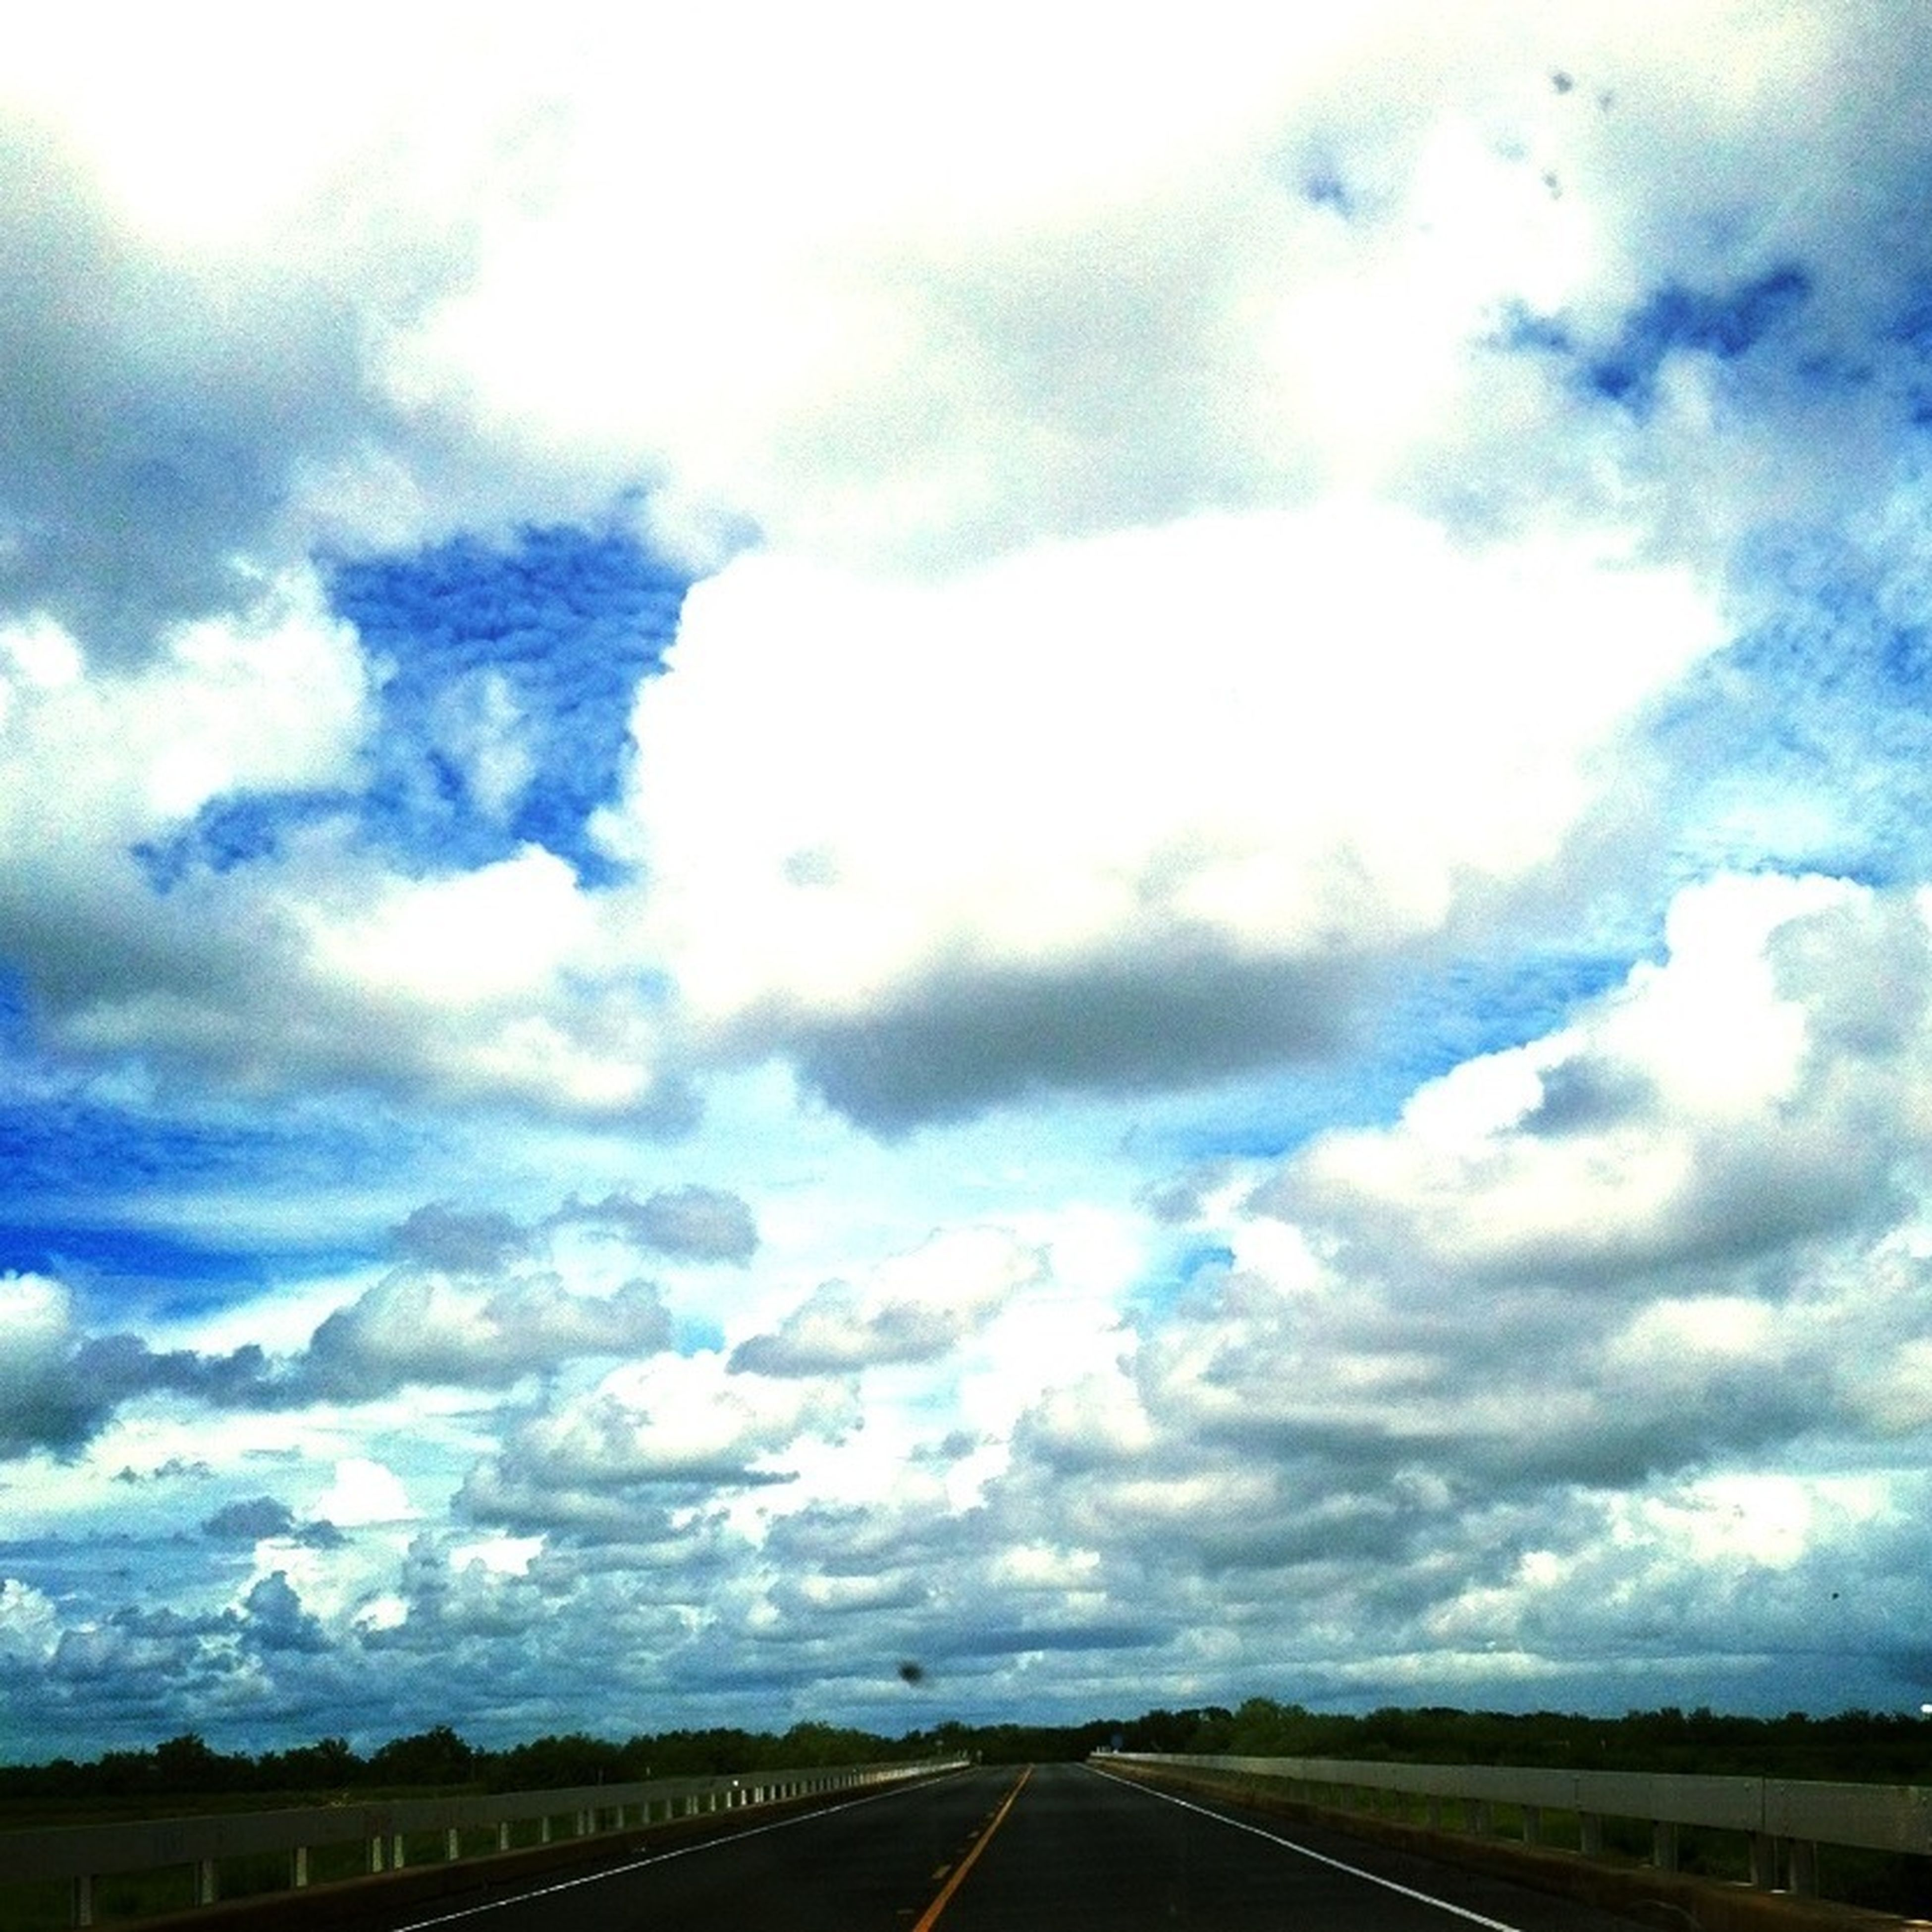 sky, transportation, the way forward, cloud - sky, road, diminishing perspective, cloudy, vanishing point, cloud, road marking, tranquil scene, tranquility, landscape, nature, scenics, overcast, beauty in nature, weather, cloudscape, outdoors